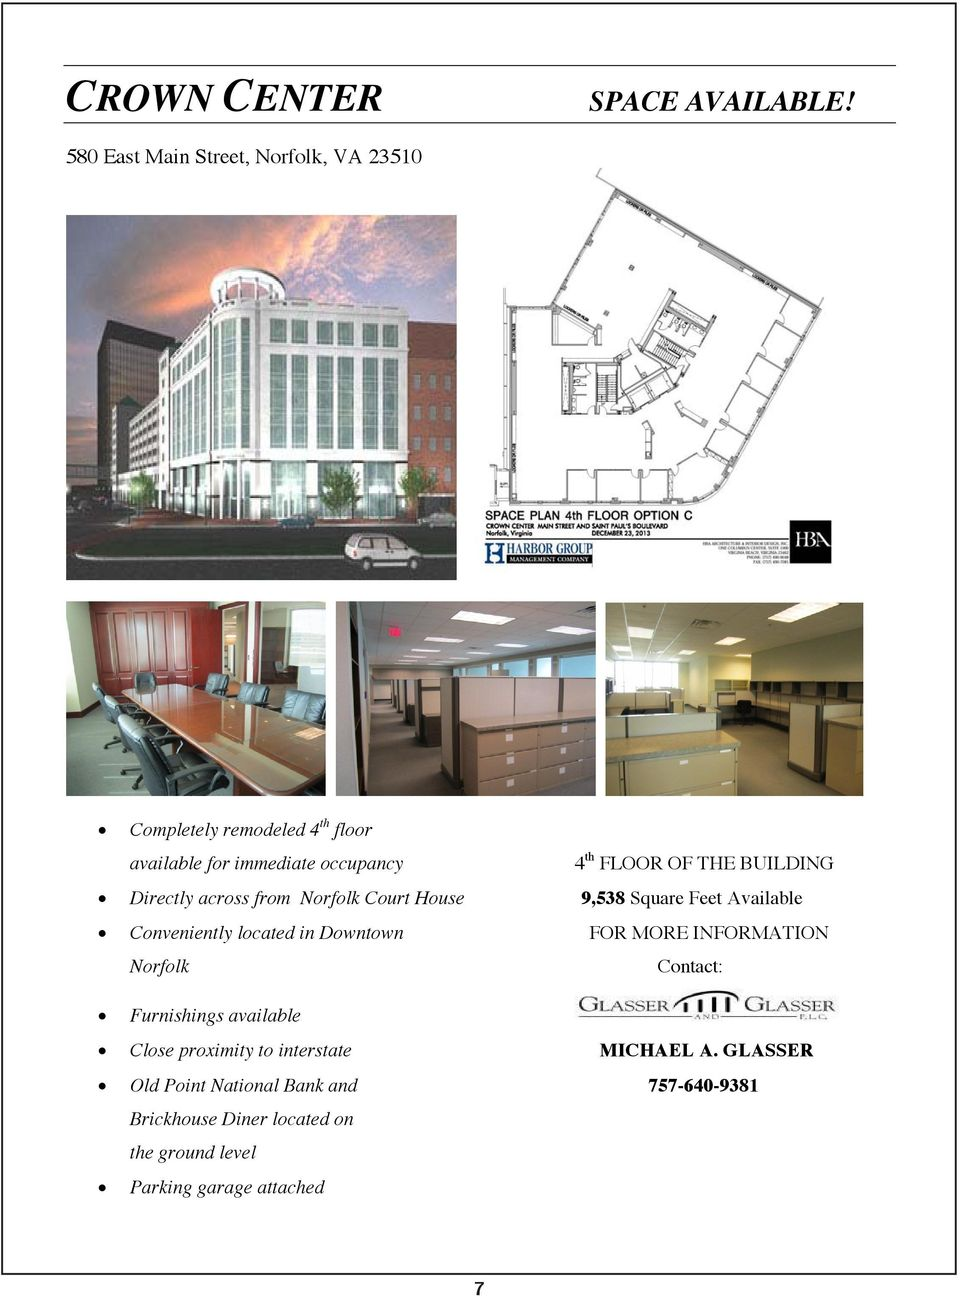 THE BUILDING Directly across from Norfolk Court House 9,538 Square Feet Available Conveniently located in Downtown FOR